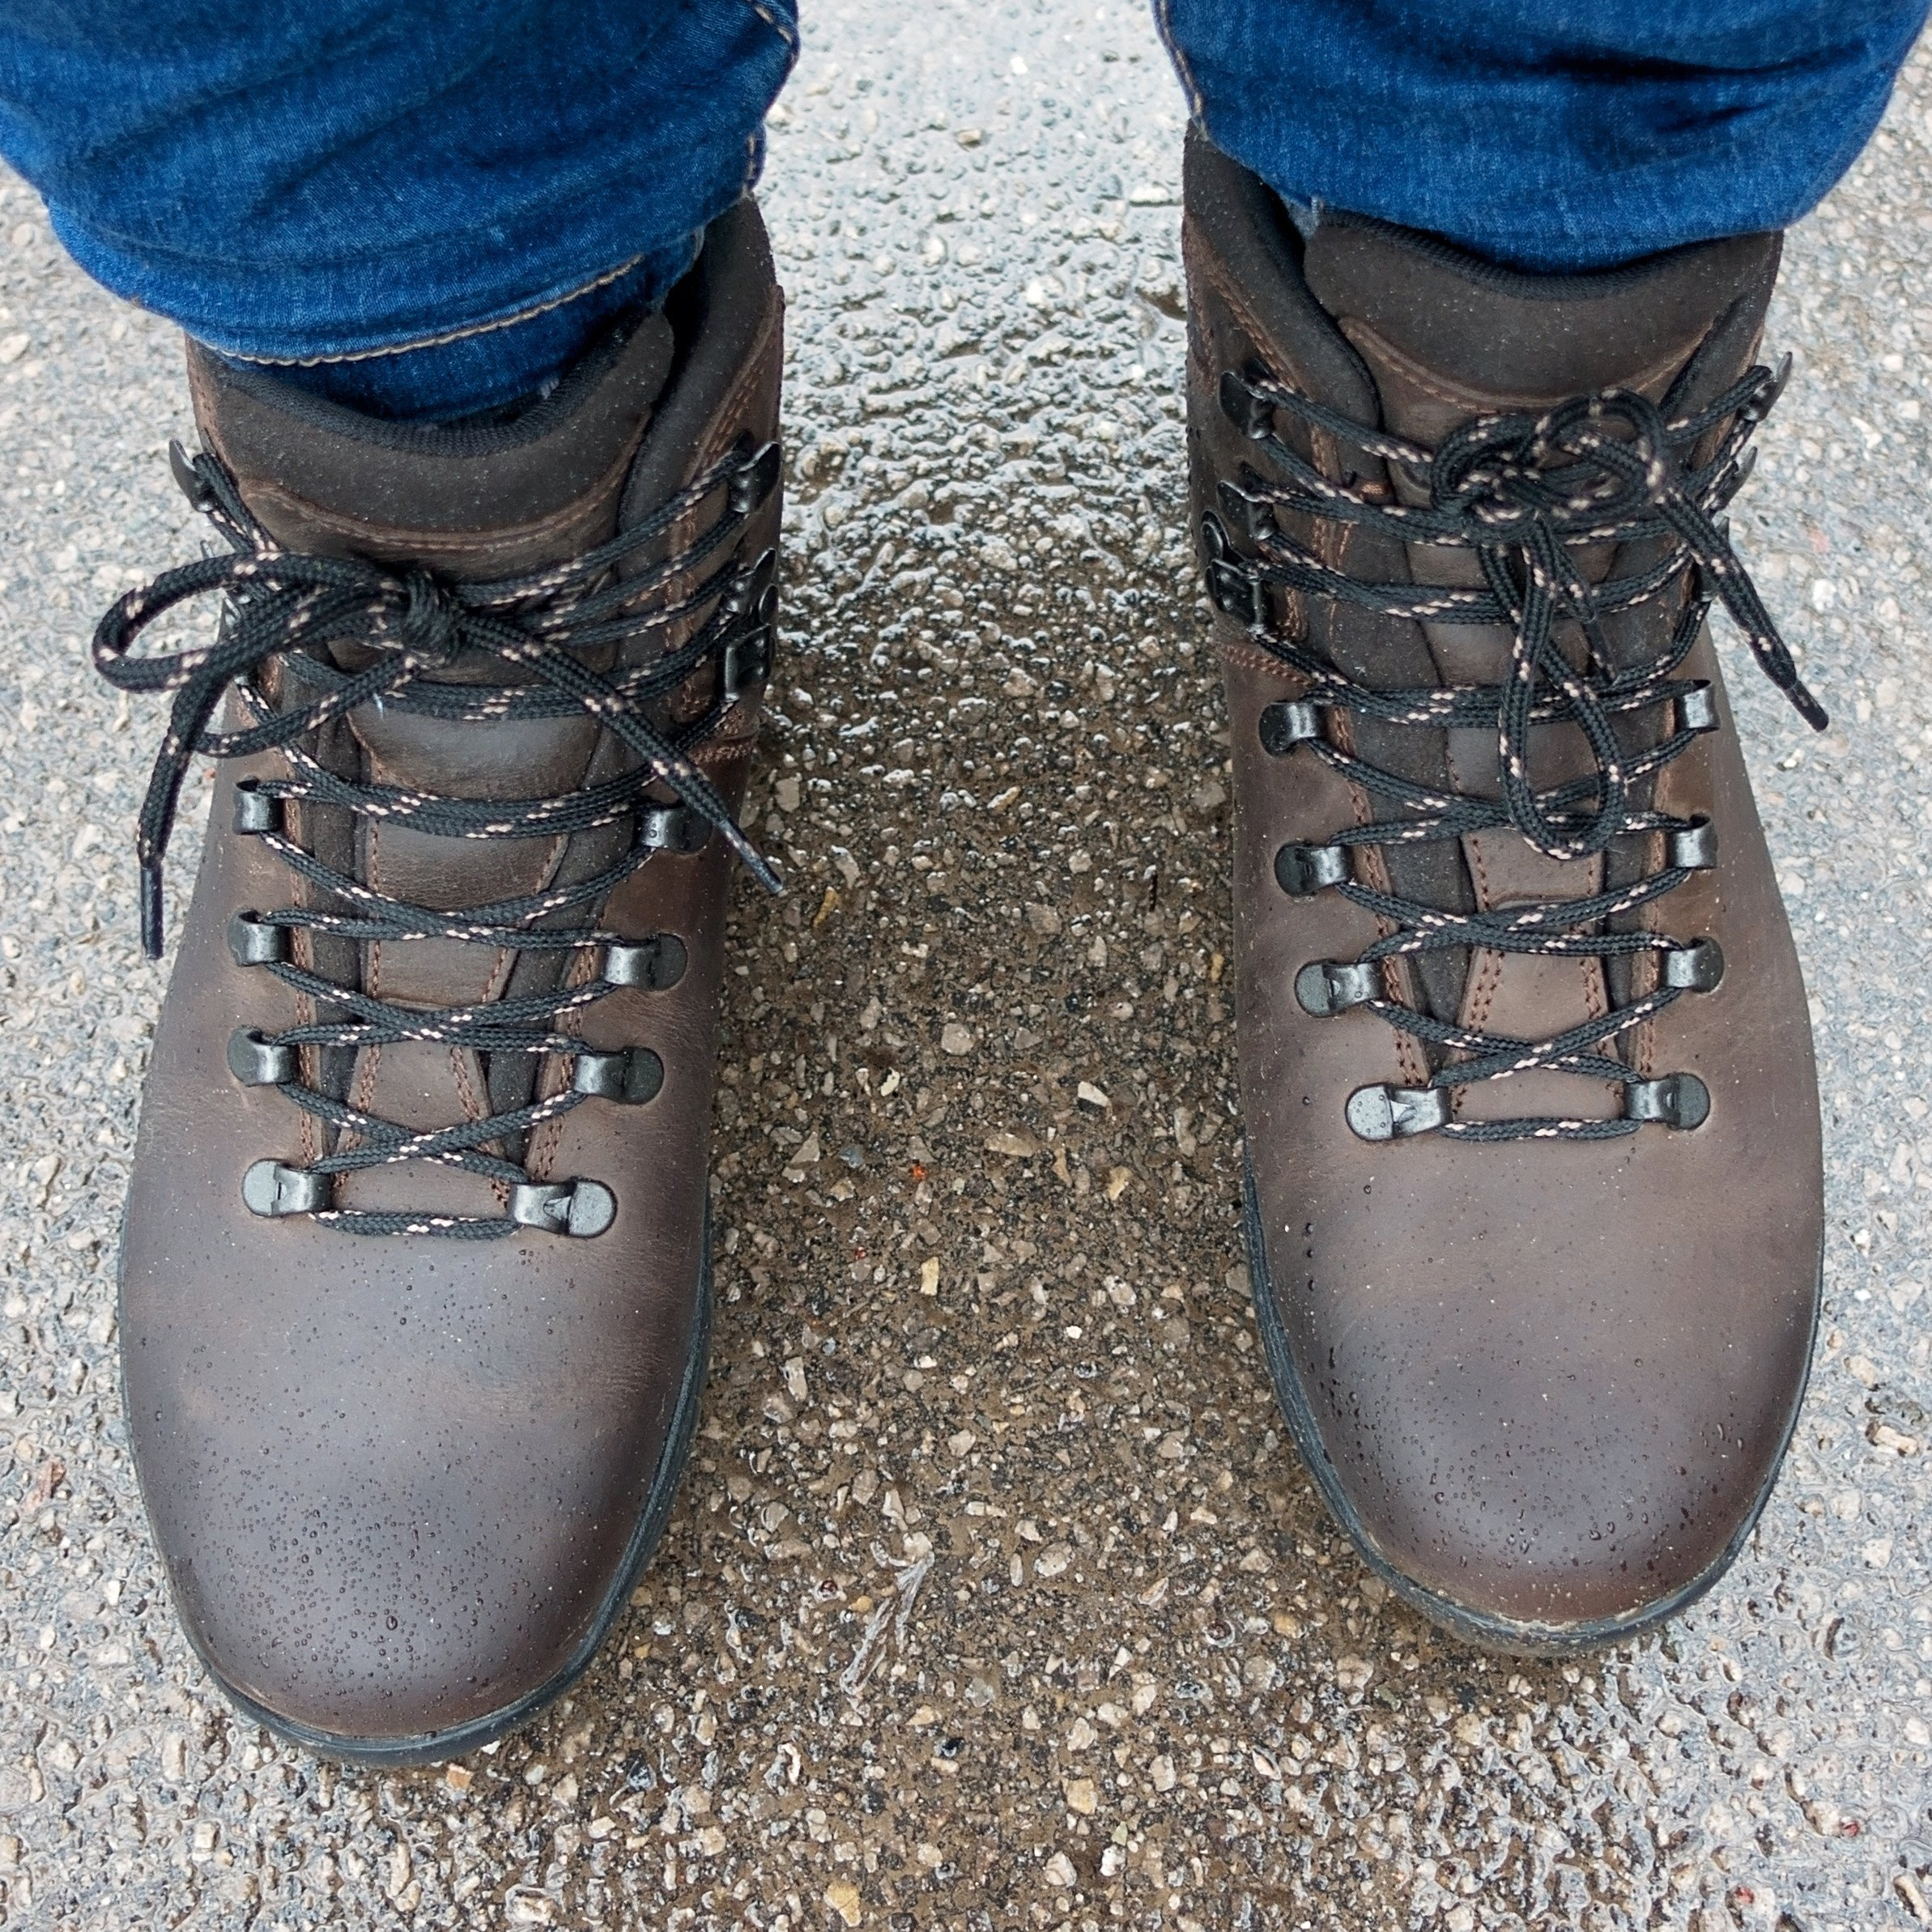 My new walking boots